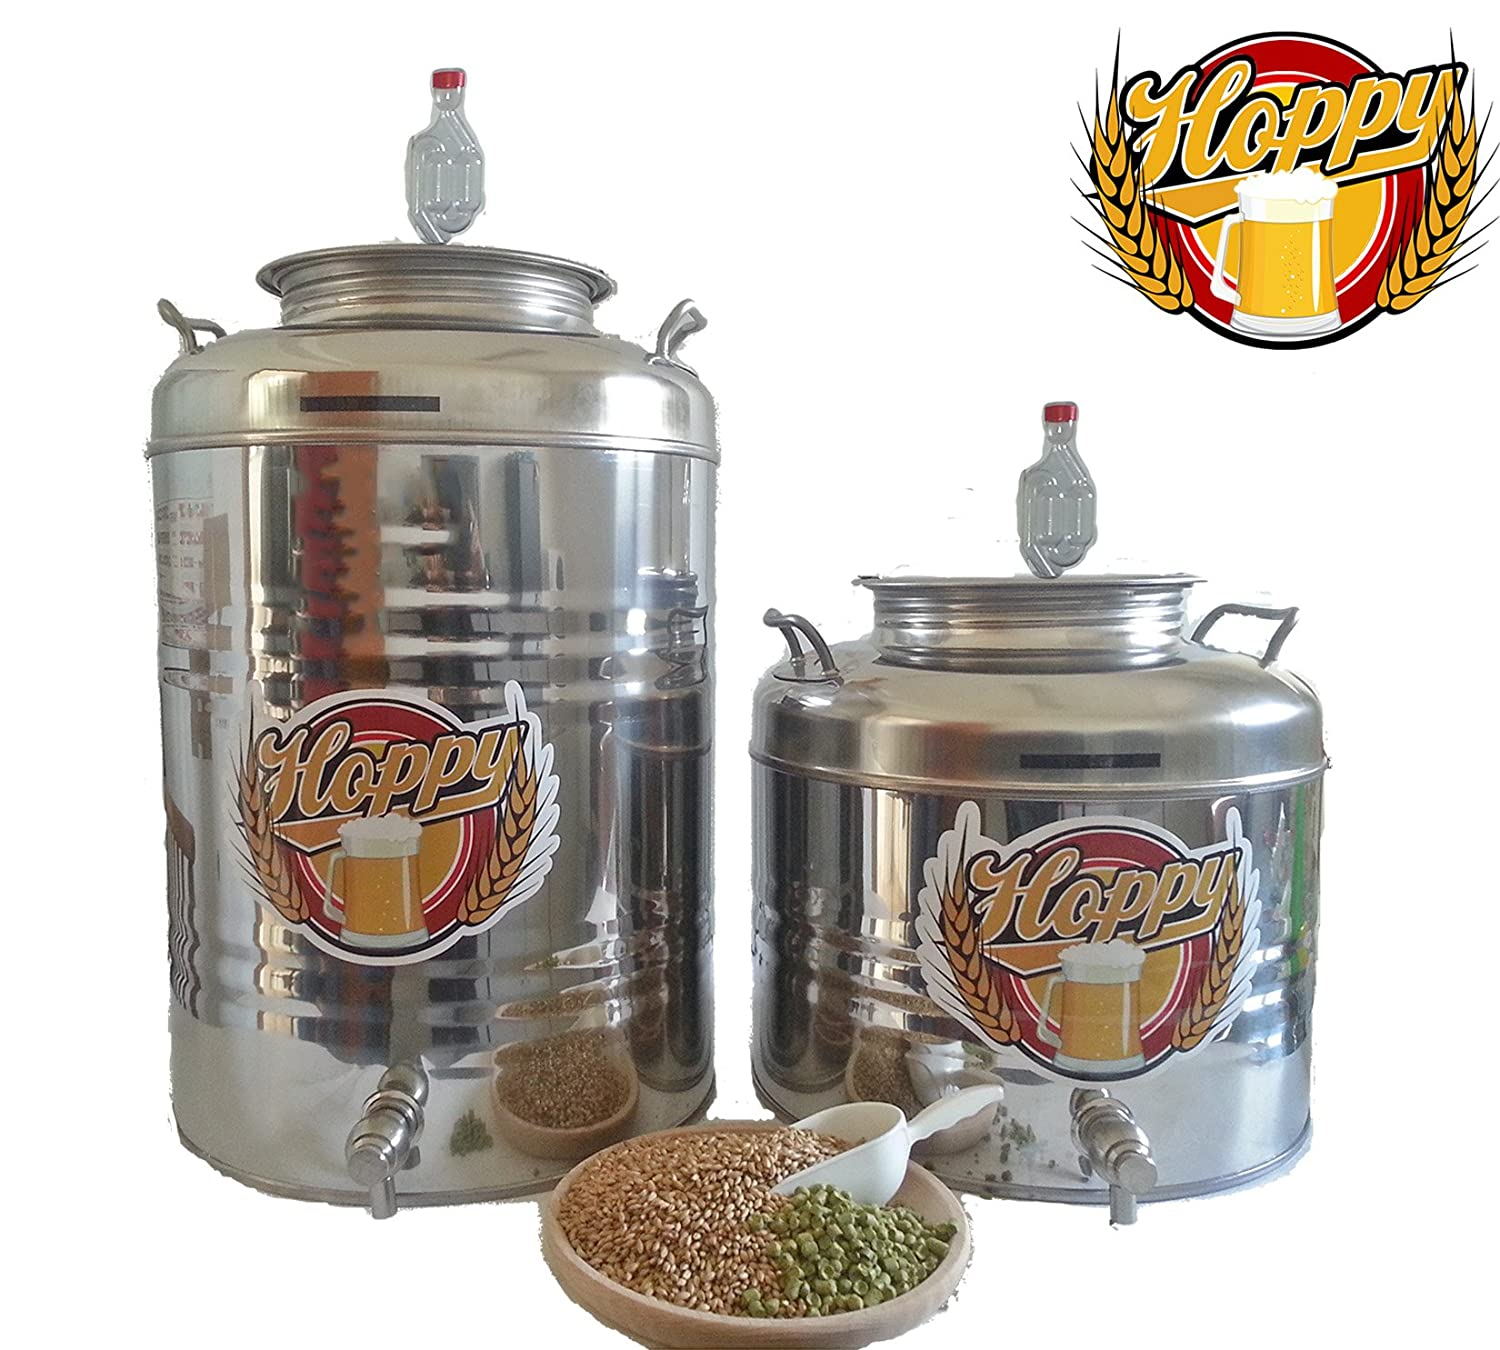 Hoppy 7.5 GALLON STAINLESS STEEL FERMENTER TANK HOMEBREWING BREW BEER WINE CIDER